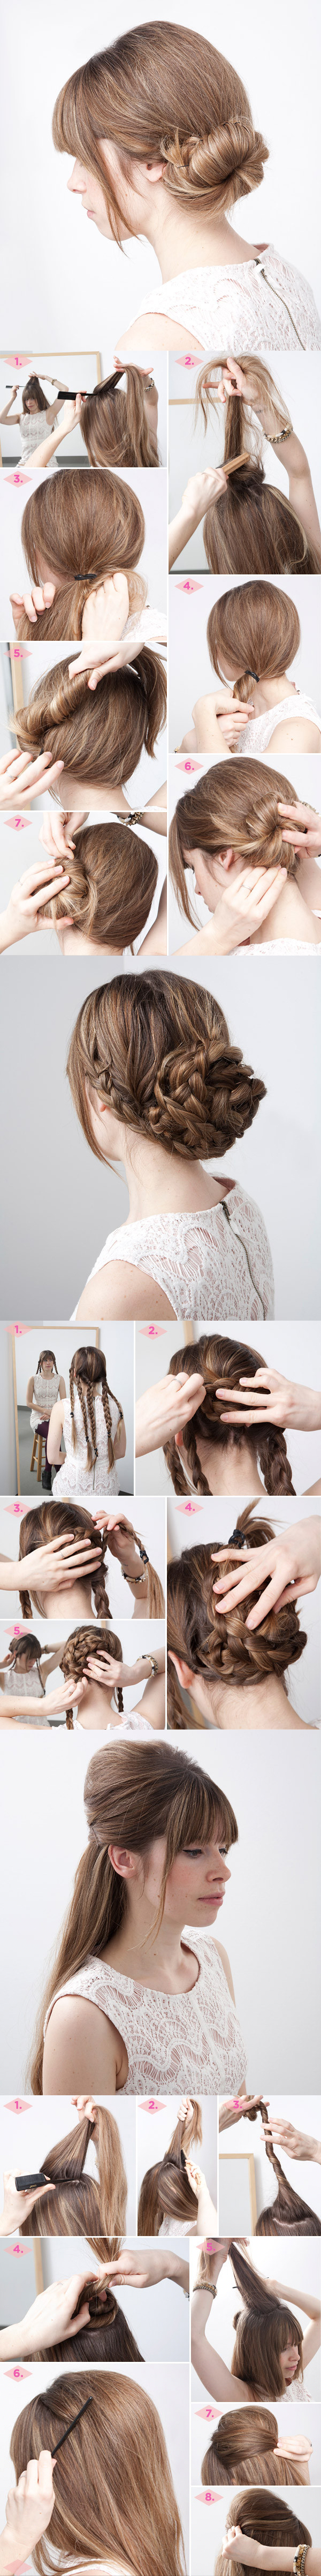 Oh So Simple Bun Hairstyles Tutorials 3 in 1 Hairstyle tutorial Wonderful 13 Simple Bun Hairstyles